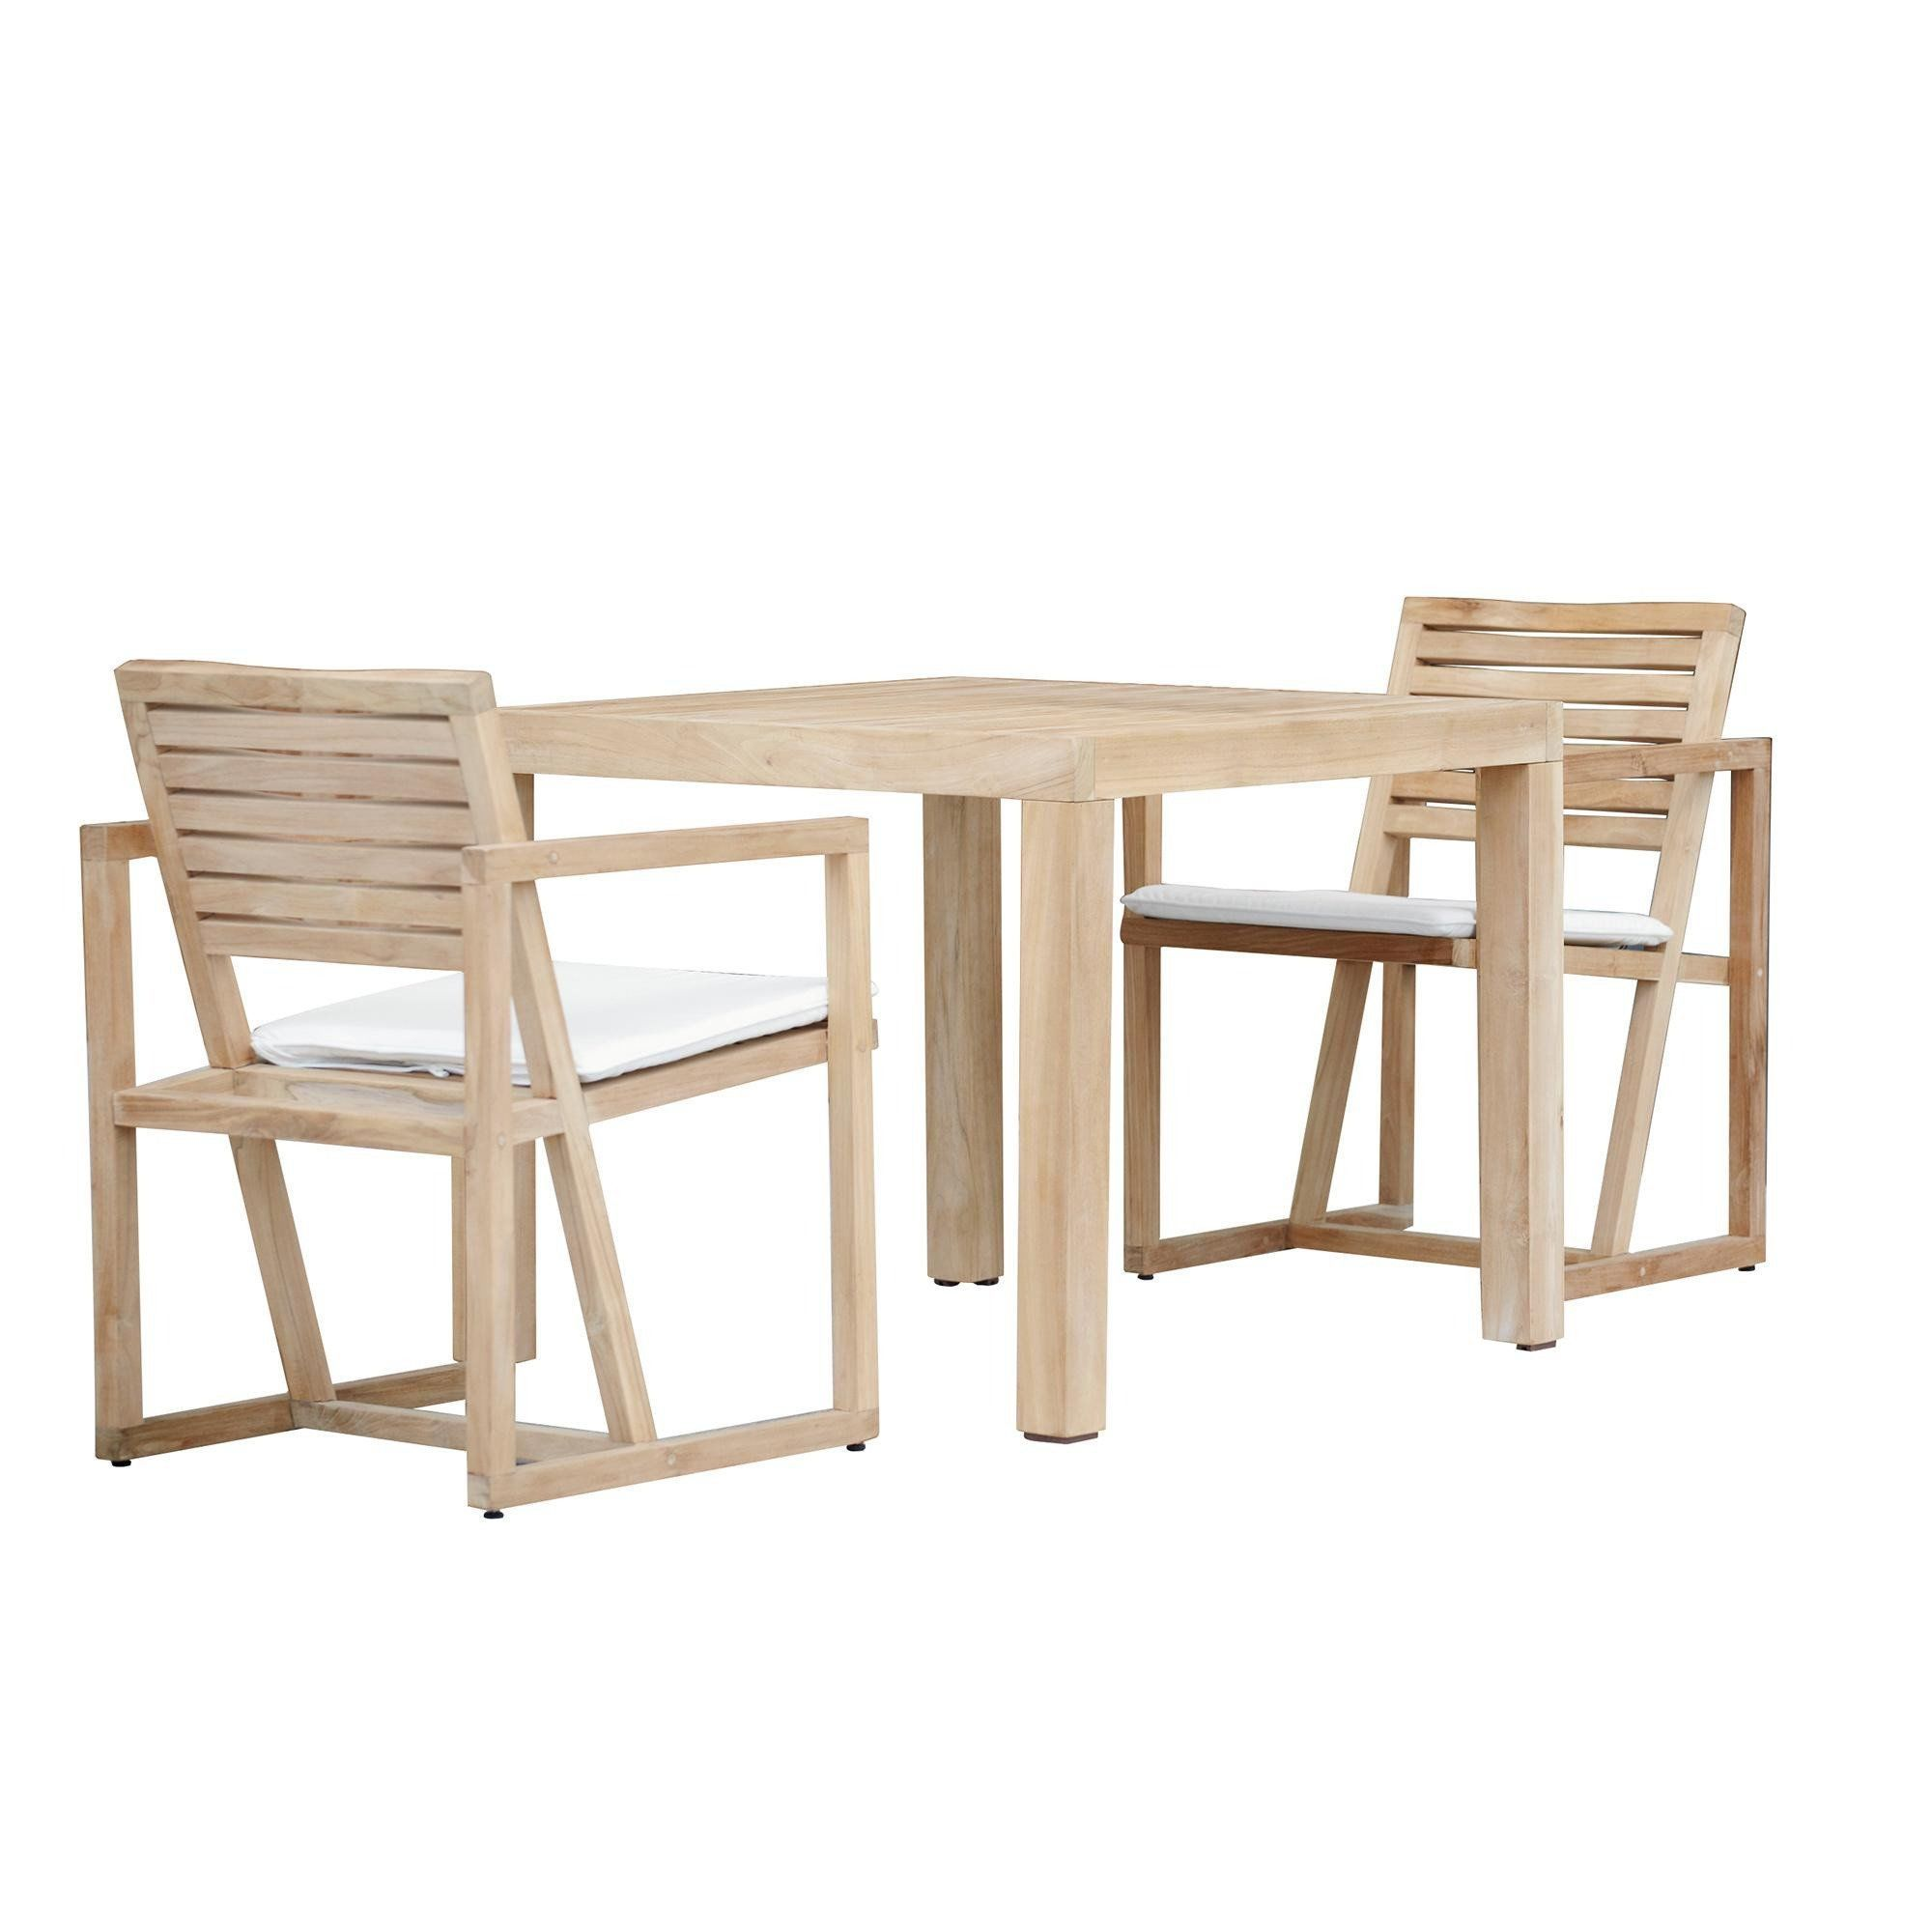 Jan Kurtz Timber Teakholz Gartenmöbel-Set | AmbienteDirect